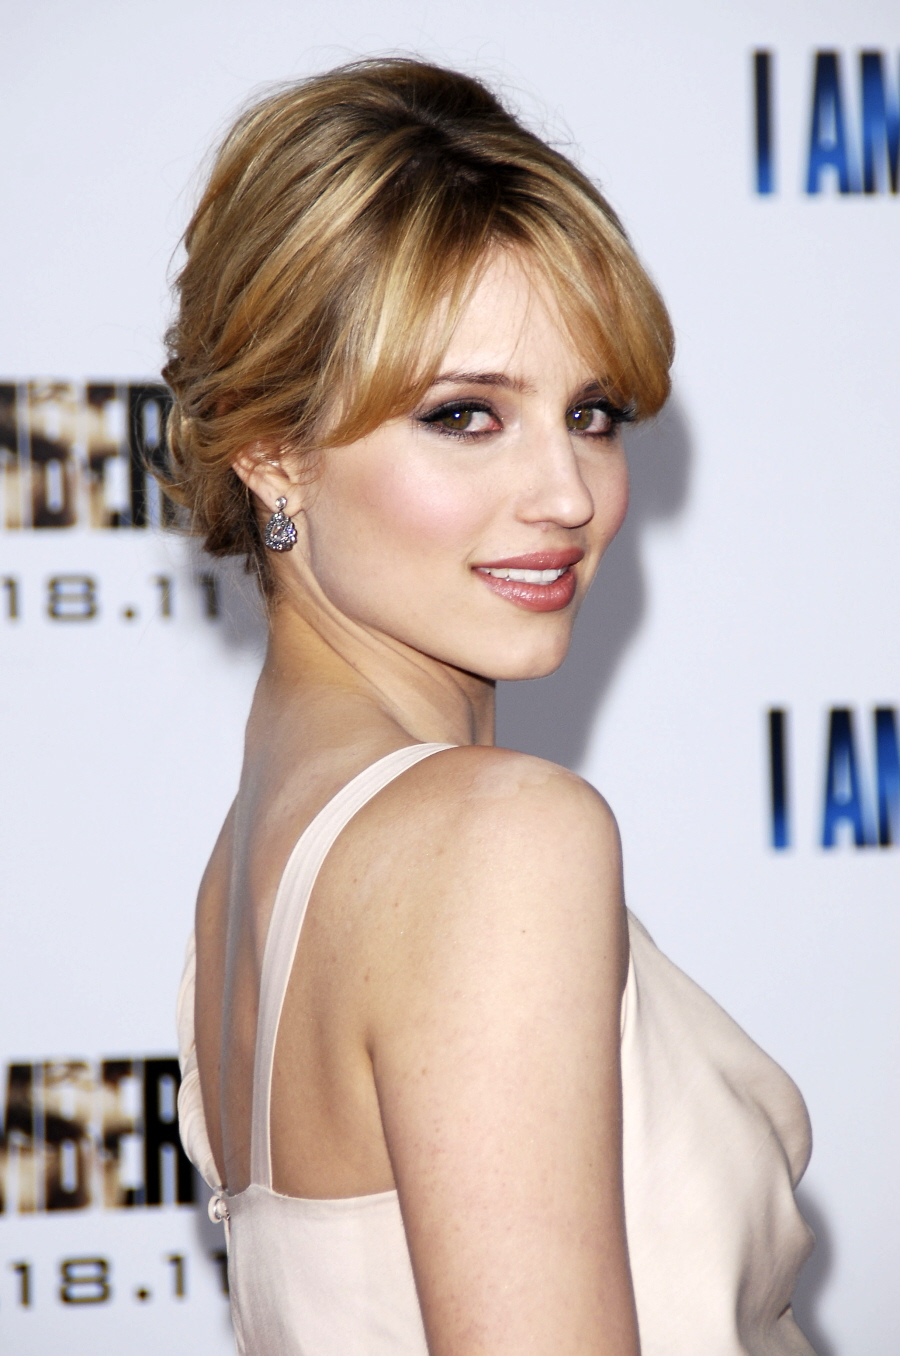 Beauty Of Dianna Agron American Actress Singer With Her Different